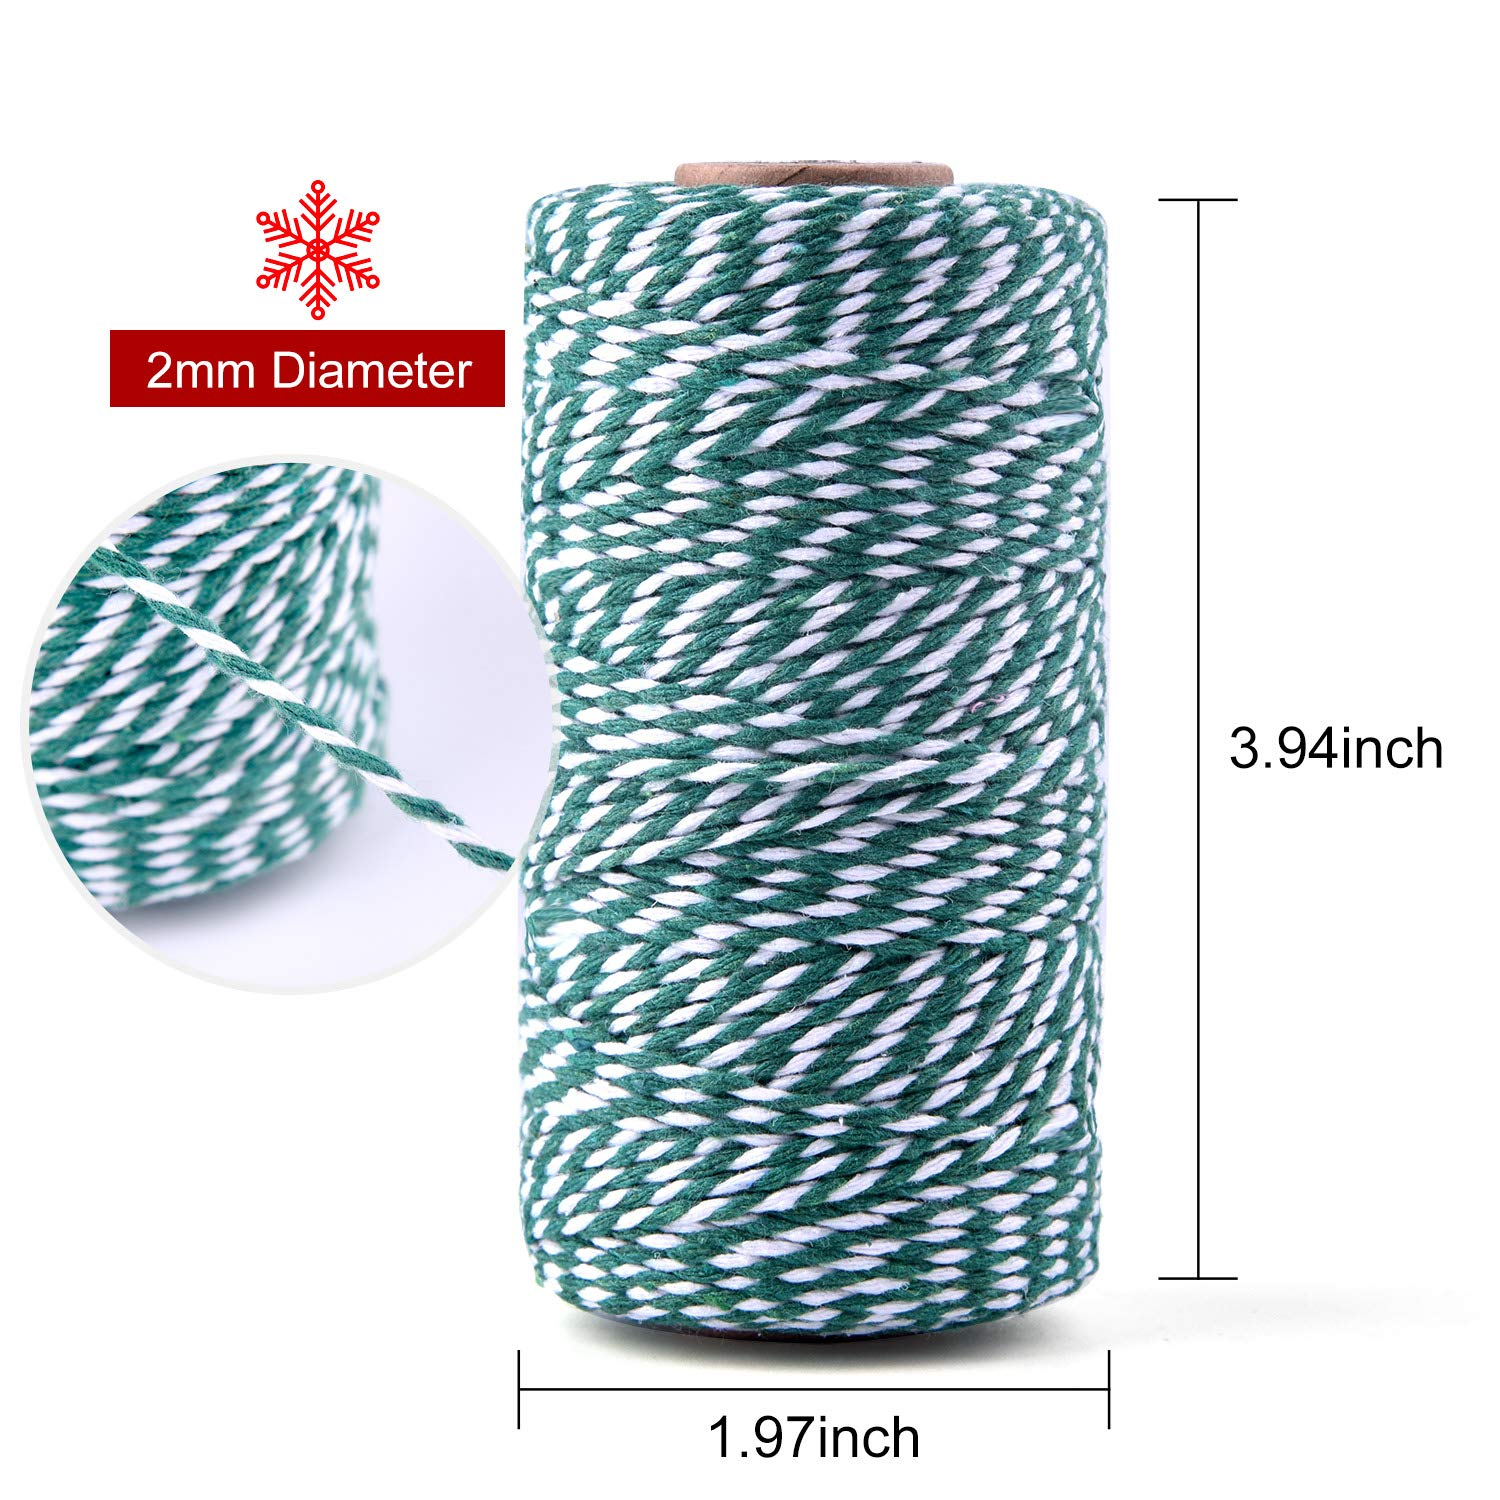 984 Feet Arts Crafts Zealor 3 Rolls Christmas Twine Cotton String Rope Cord for Gift Wrapping